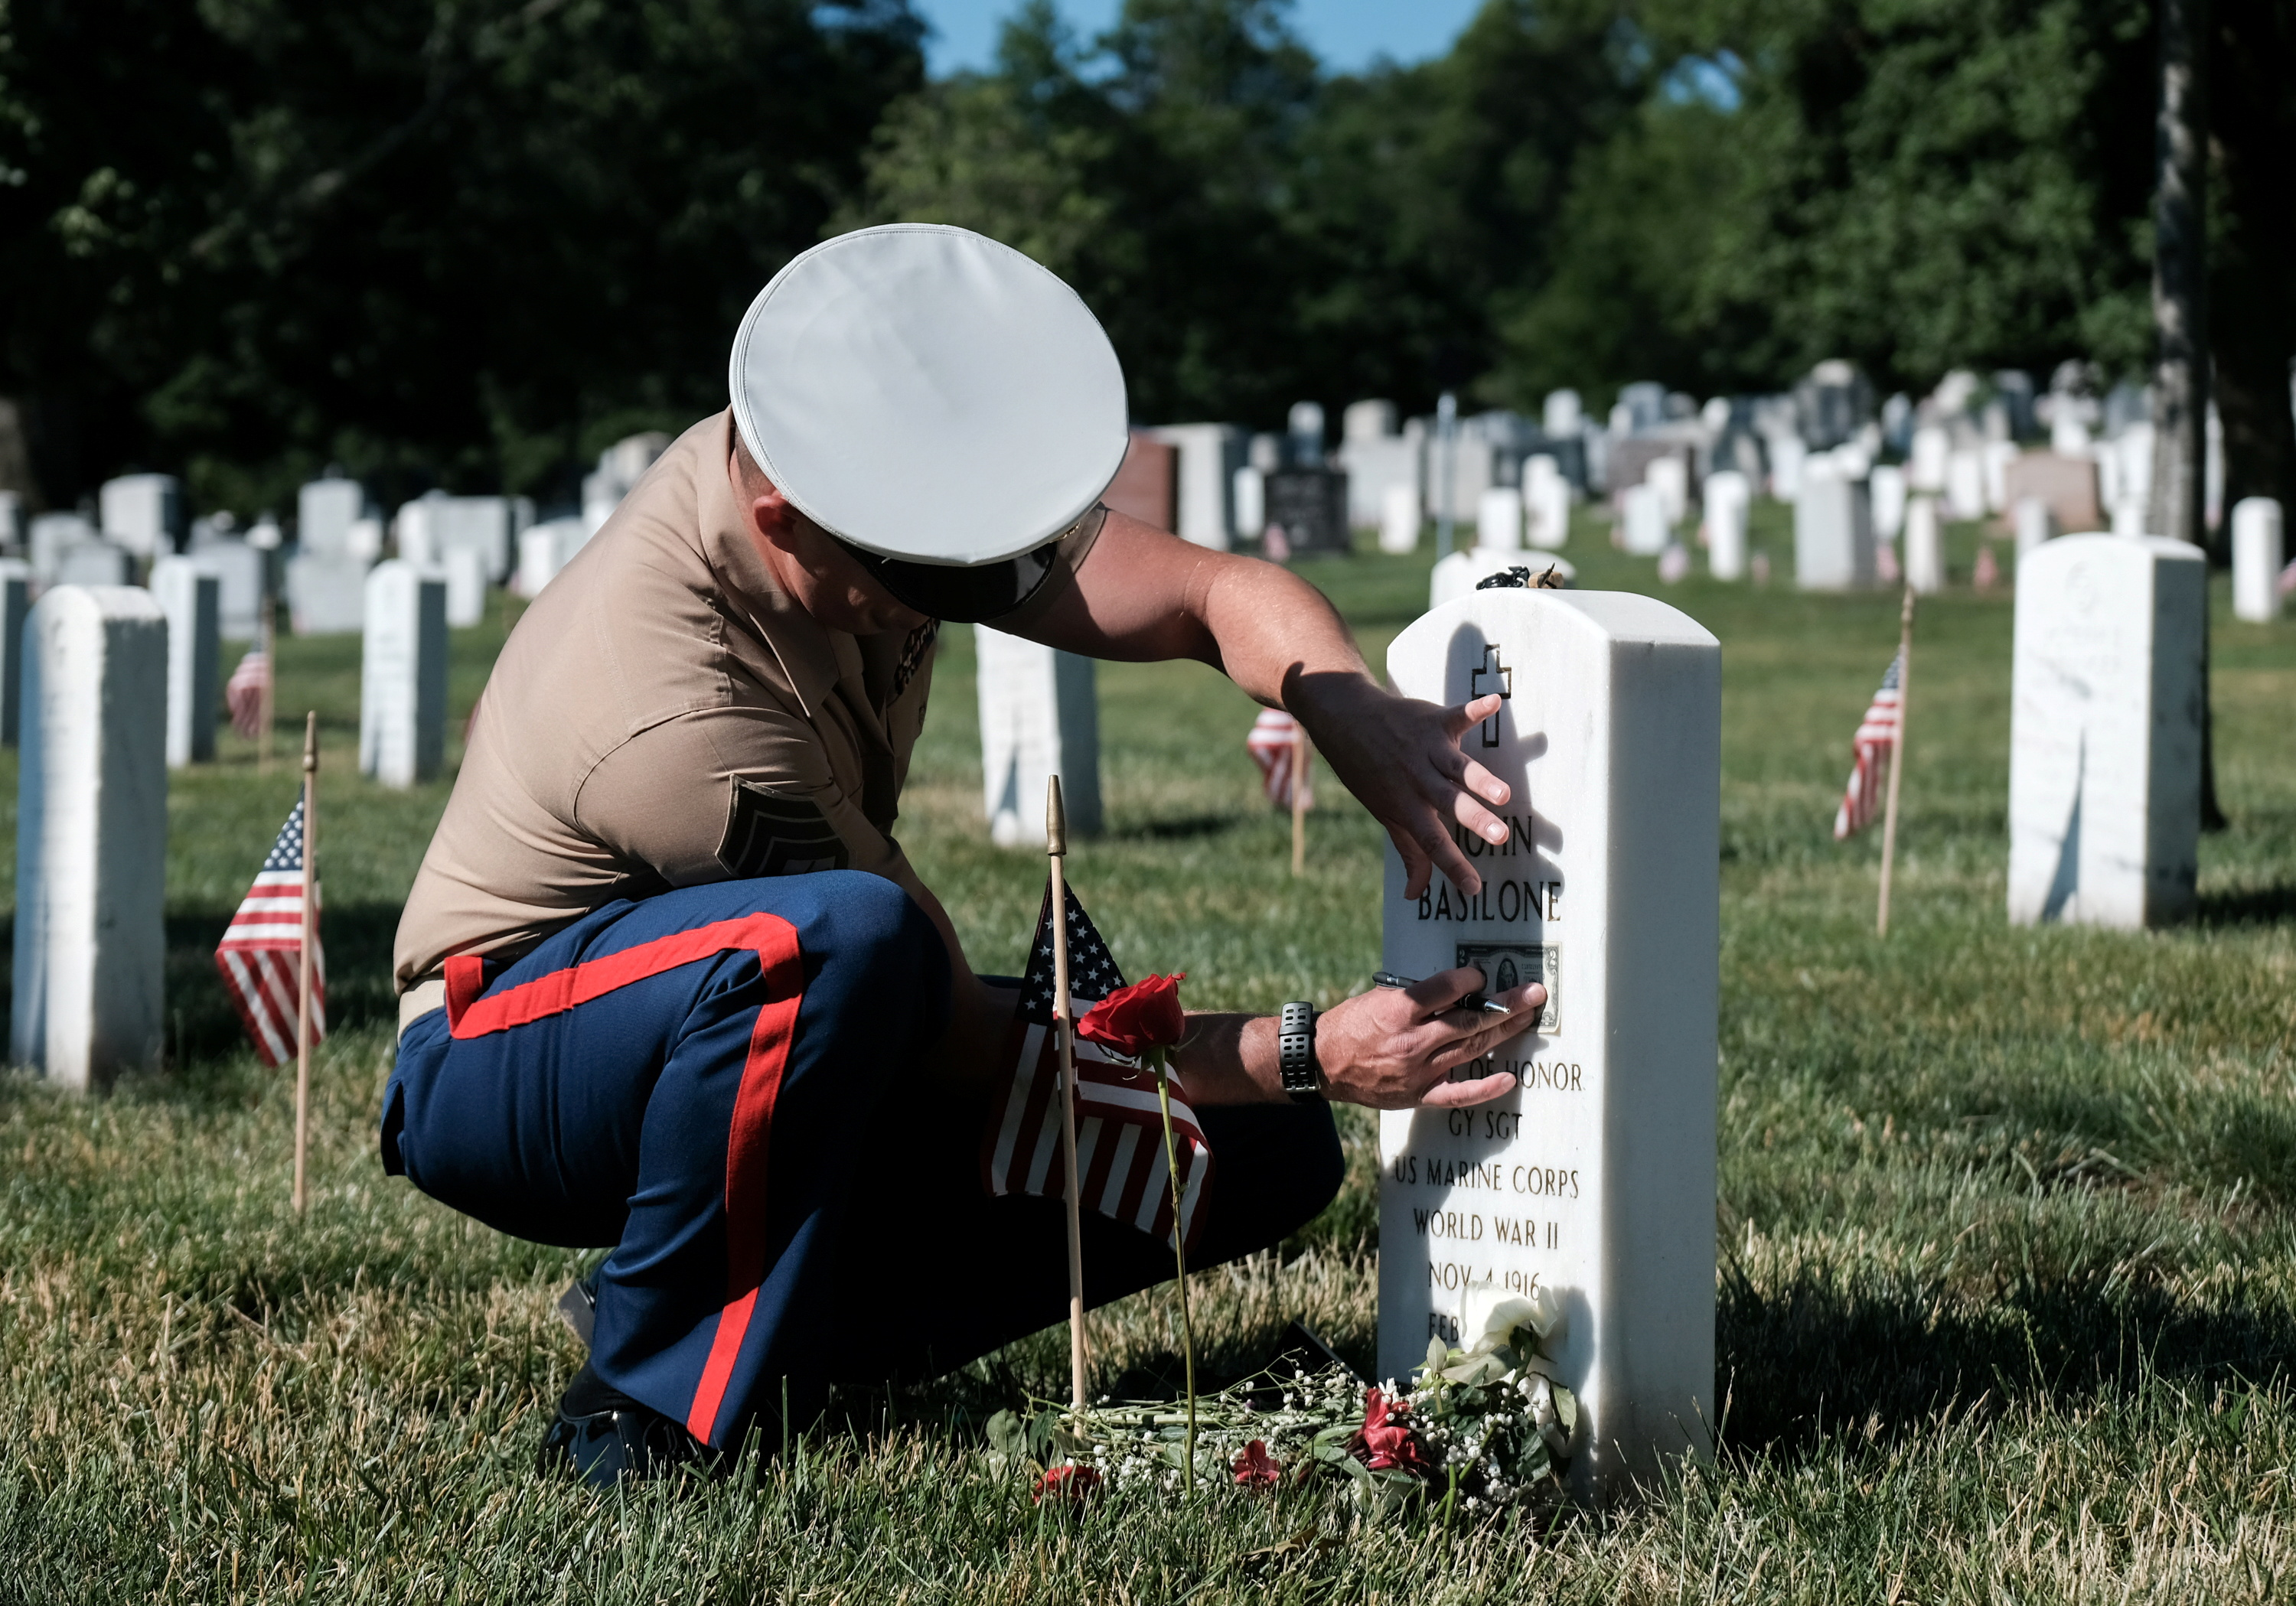 A Marine pays respect to a service member during Memorial Day in honor of those lost in war at Arlington National Cemetery across the river from Washington in Arlington, Virginia, U.S., May 31, 2021.  REUTERS/Michael A. McCoy